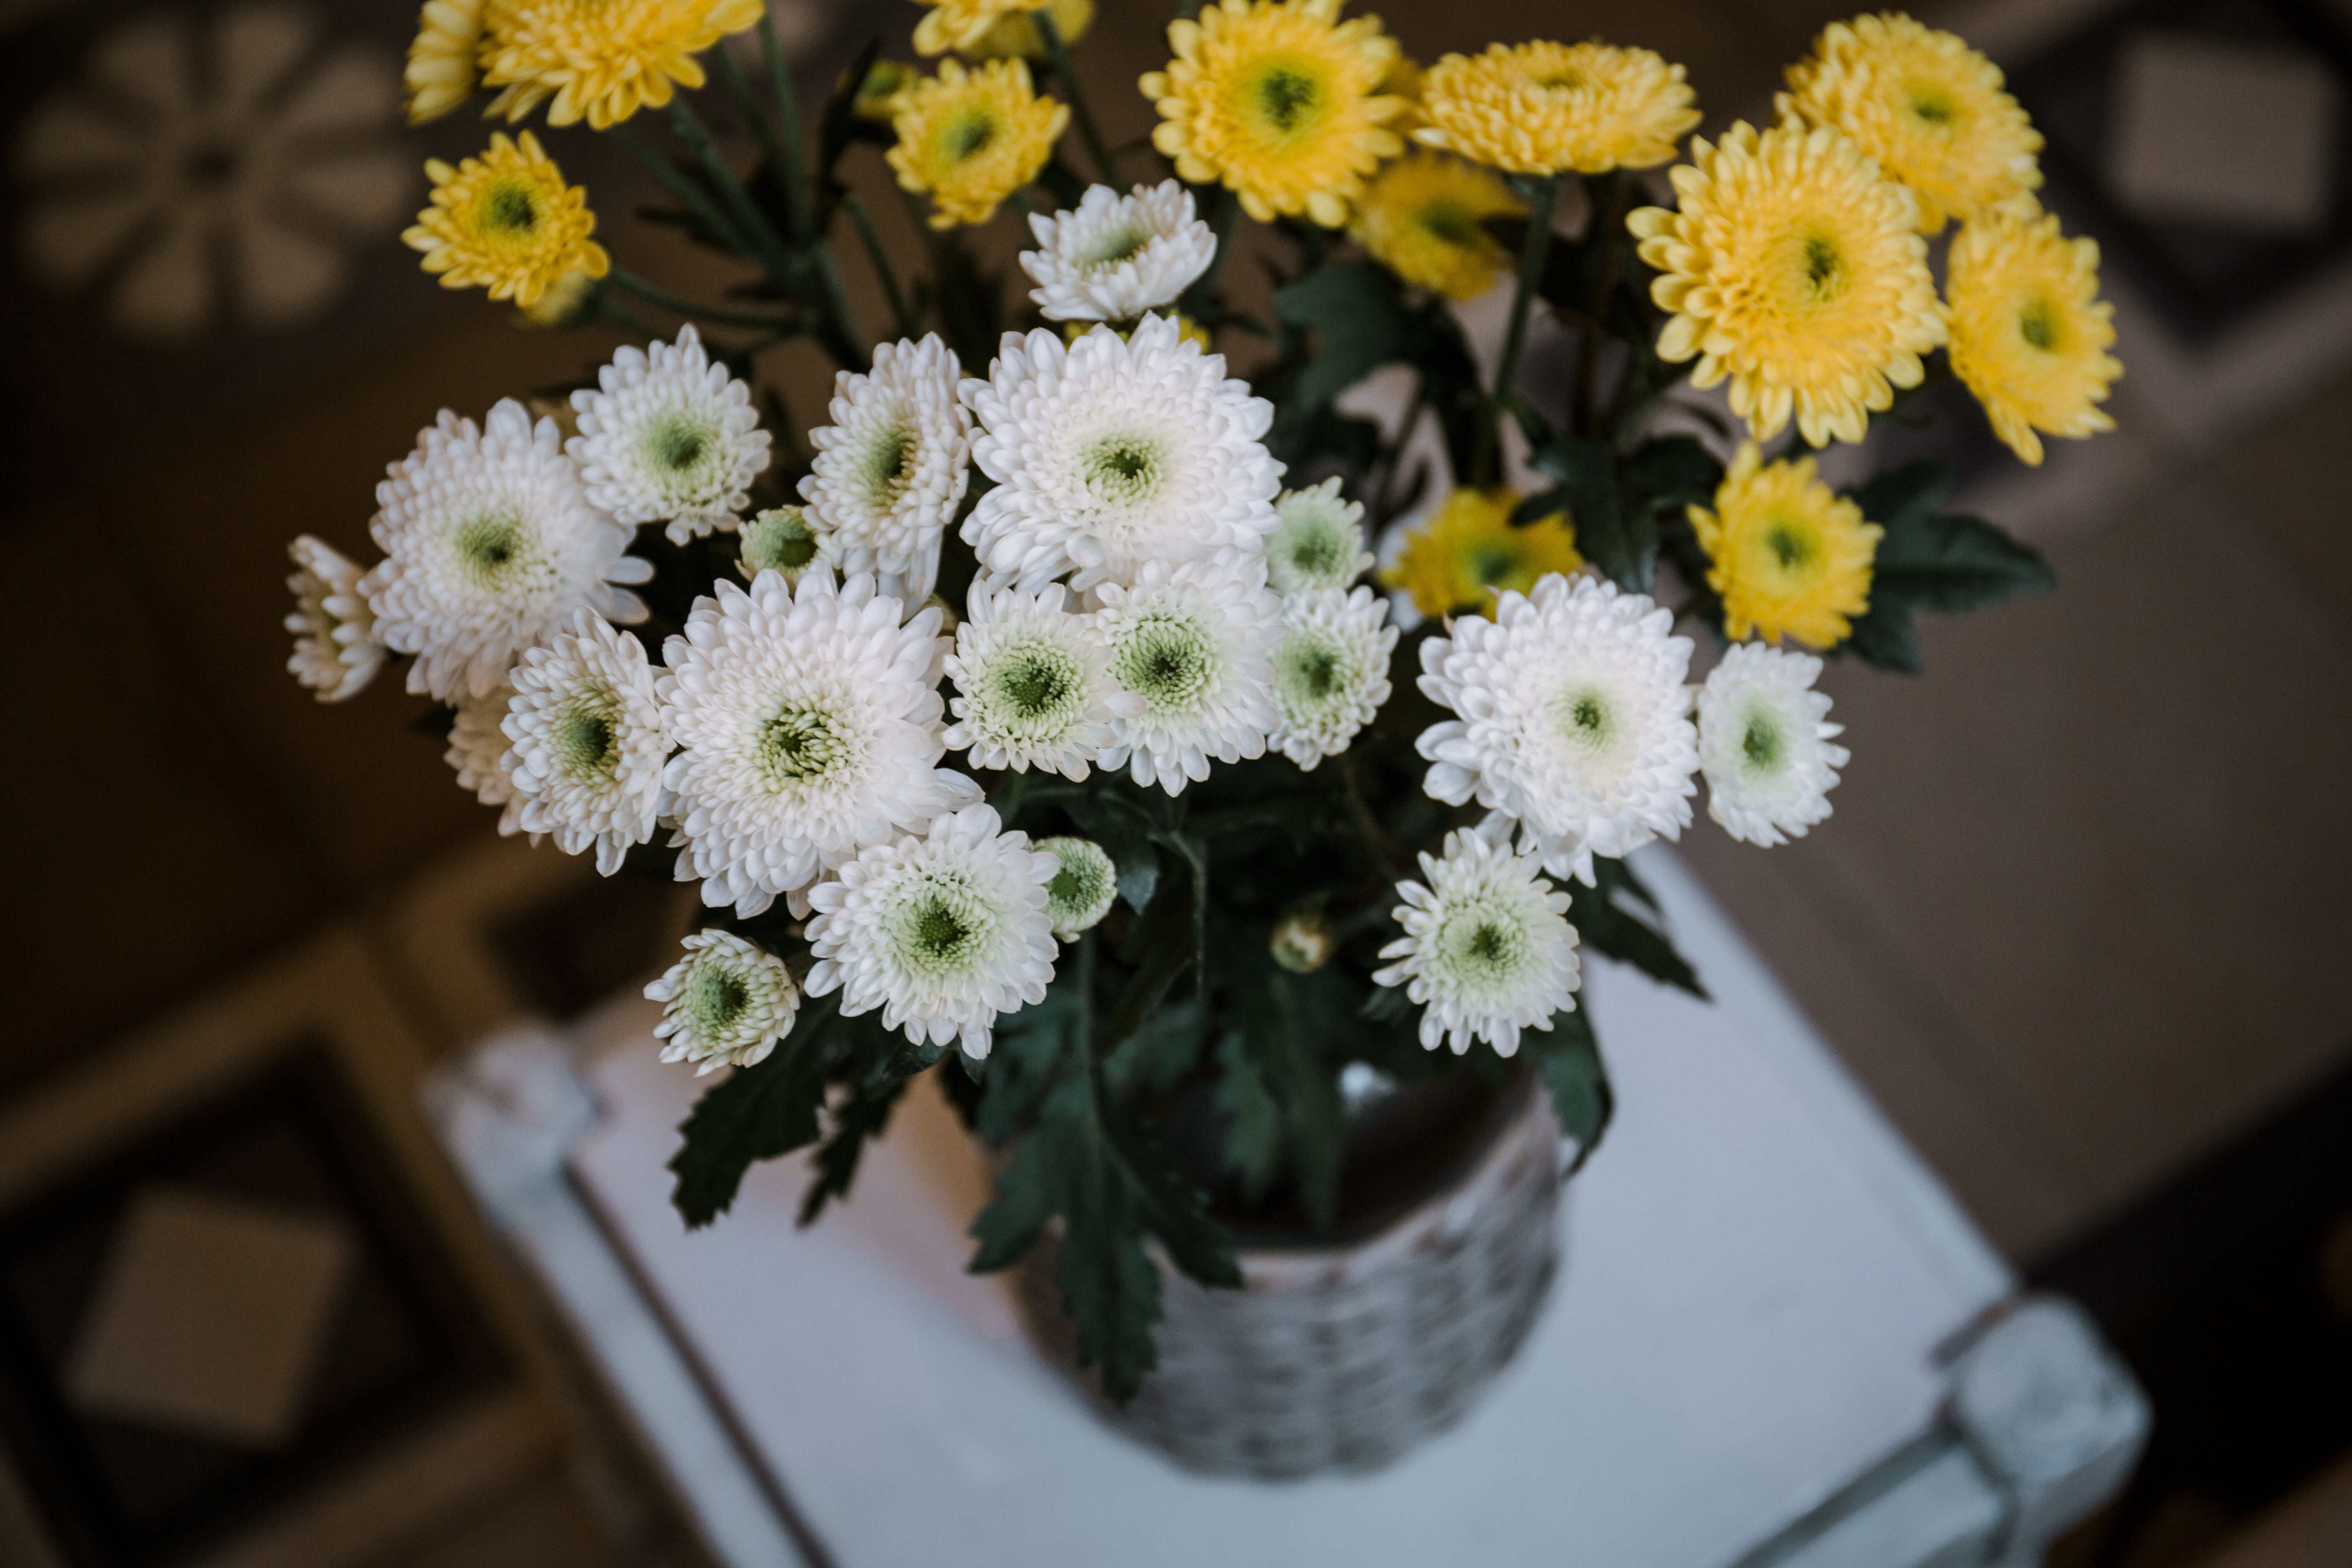 yellow and white petaled flower arrangements